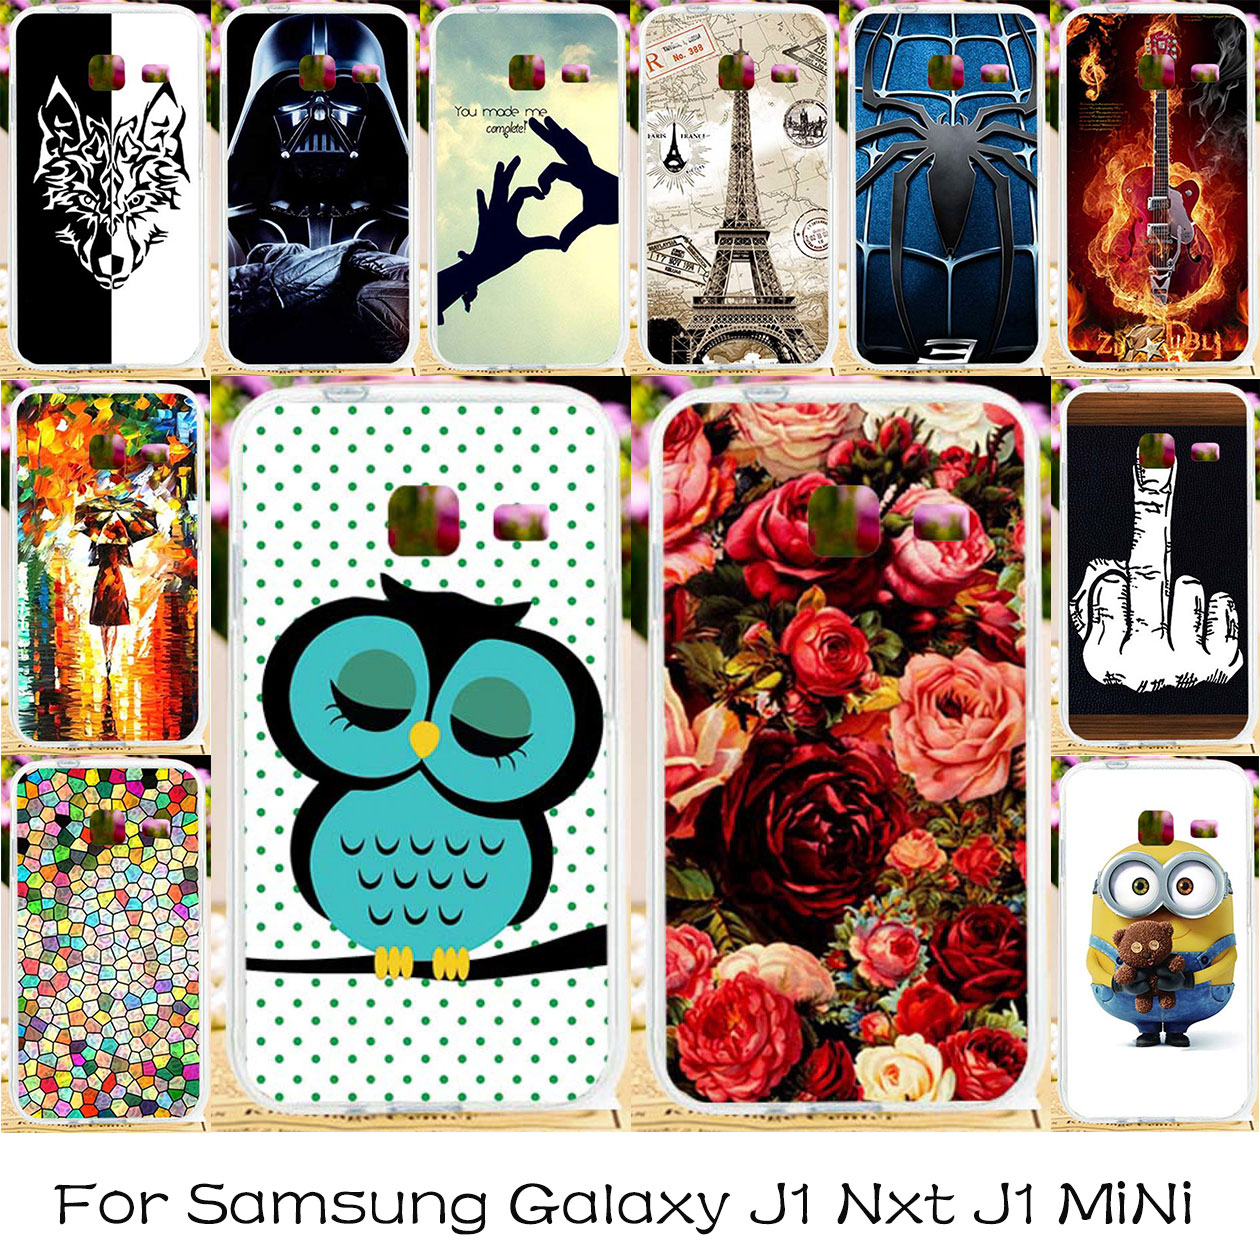 Taoyunxi Silicone Plastic Phone Case For Samsung Galaxy J1 Nxt Details About Ut15b Multifunction Voltage Short Circuit Tester Step Mini 2016 Bag Cover J105 Sm J105f J105h Housing Shell